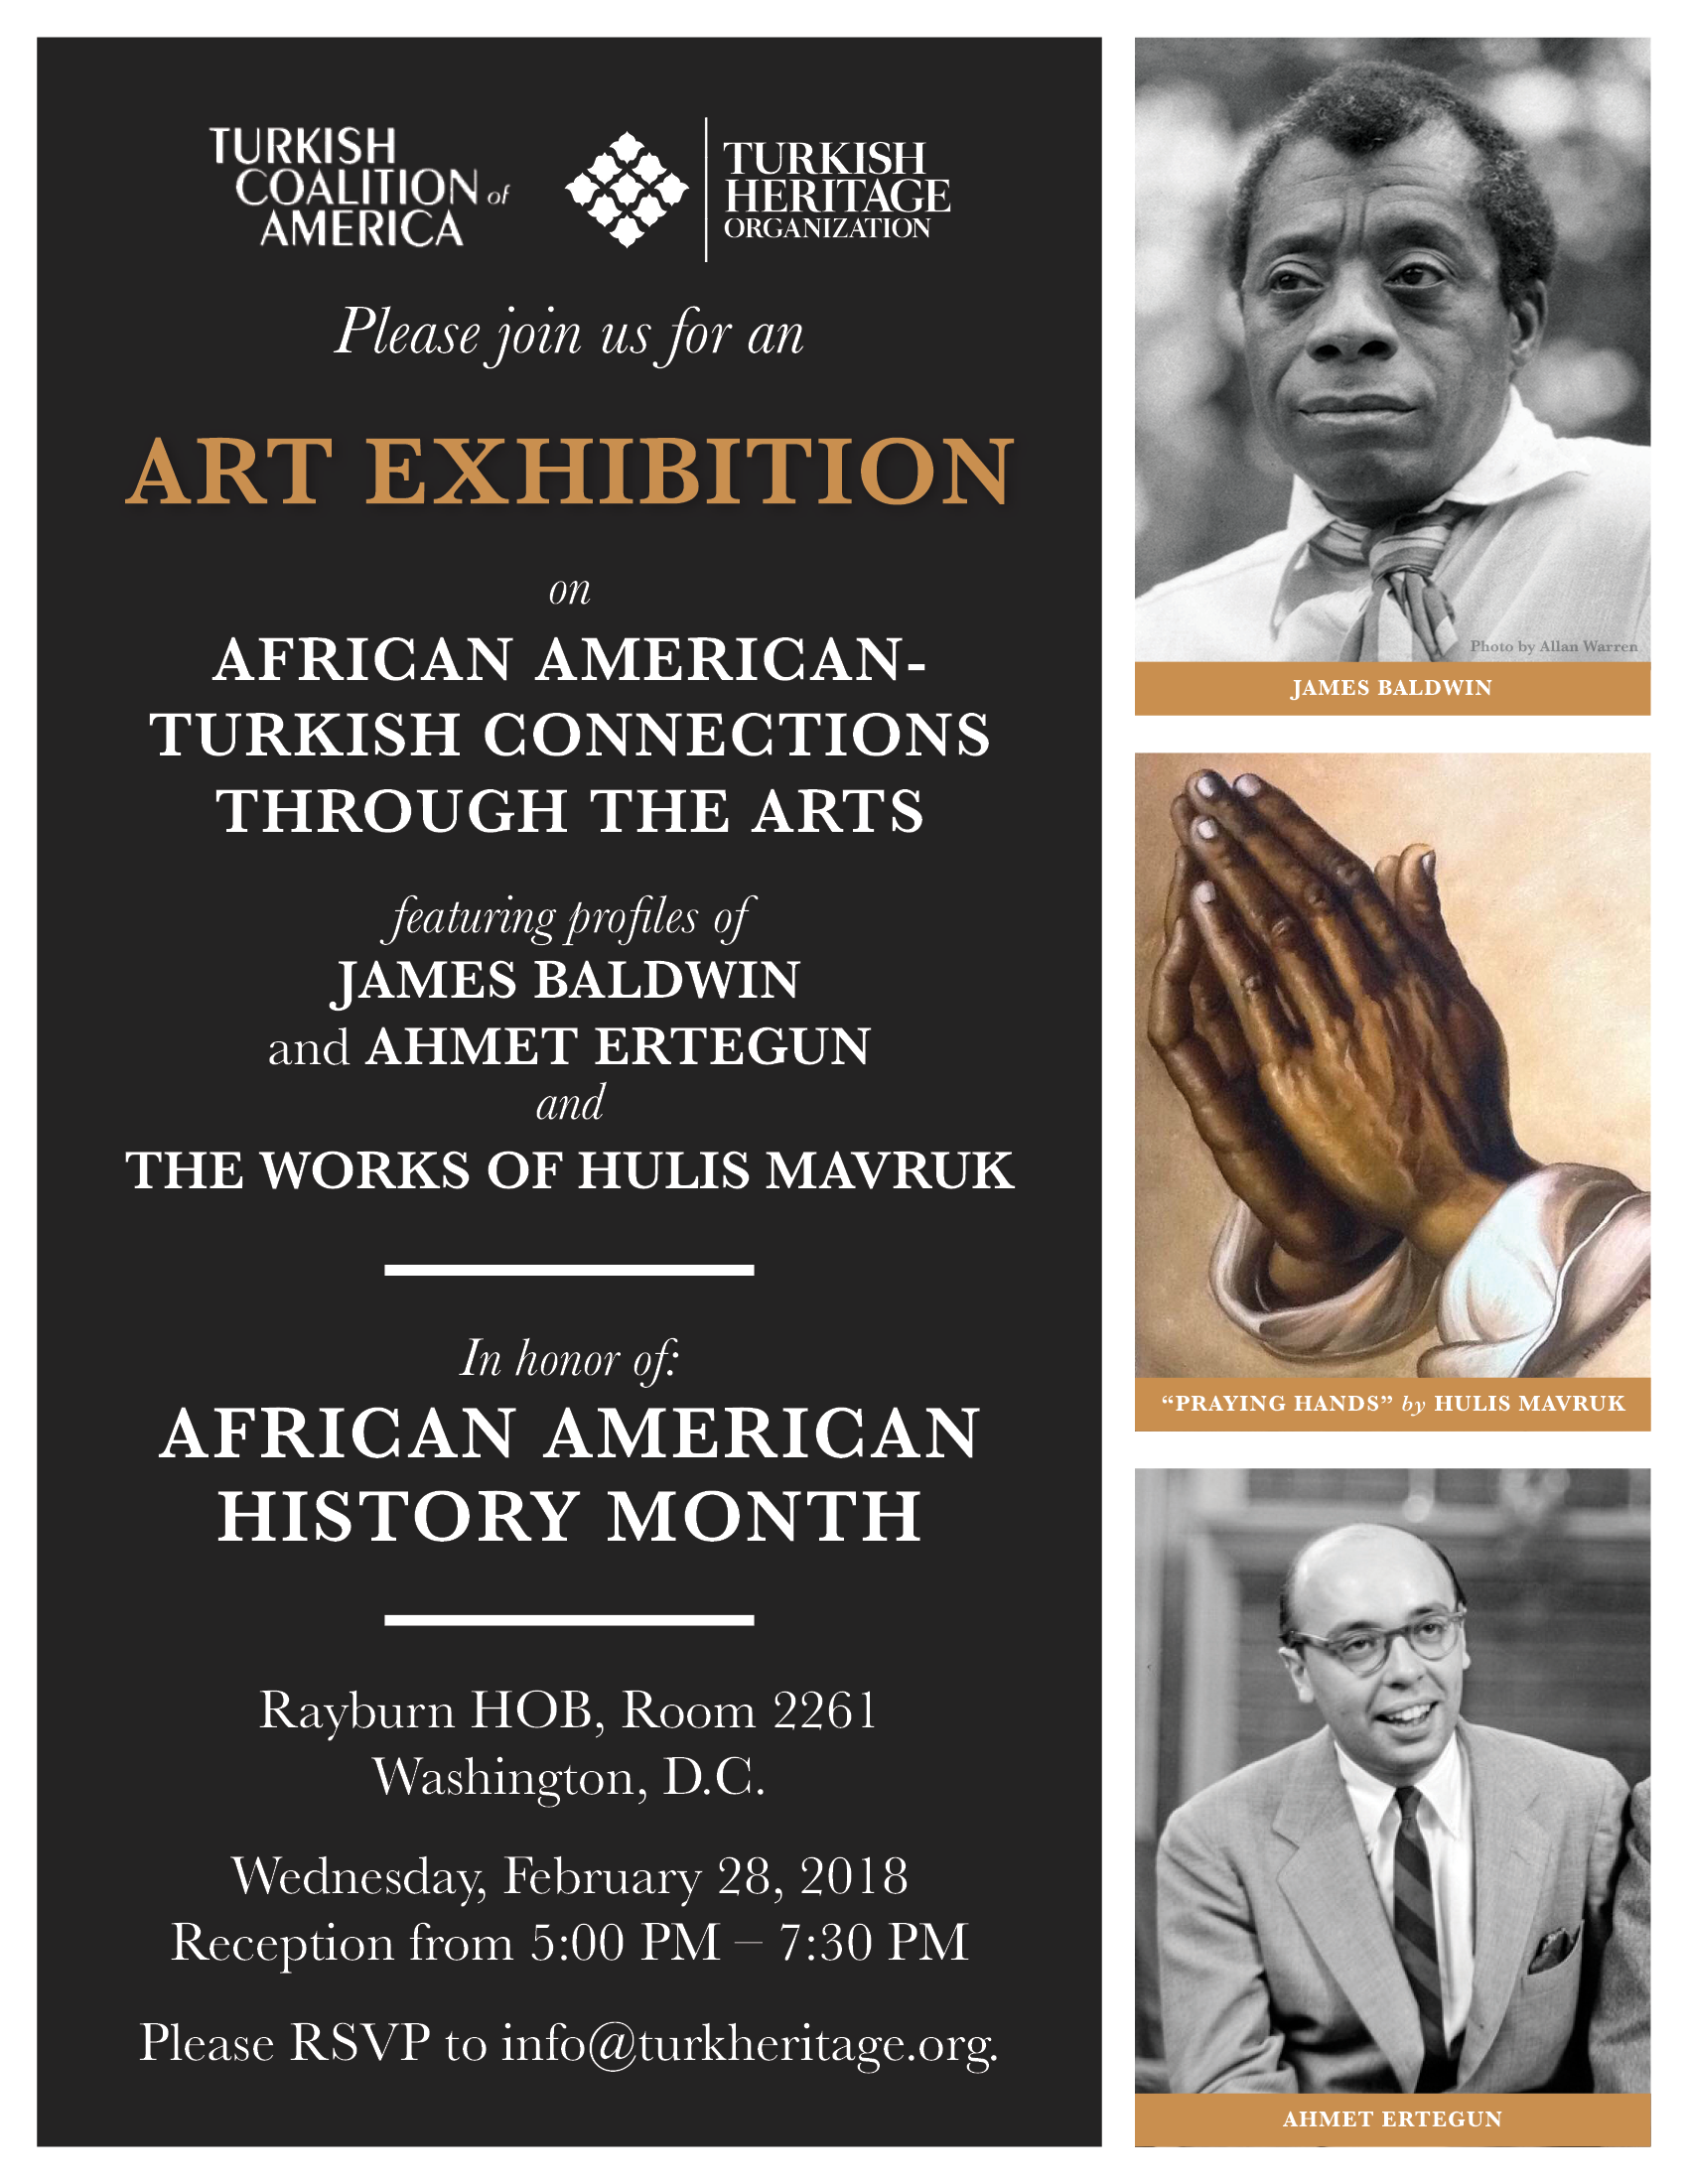 FEB. 28: ART EXHIBITION AND RECEPTION ON AFRICAN AMERICAN-TURKISH CONNECTIONS THROUGH THE ARTS